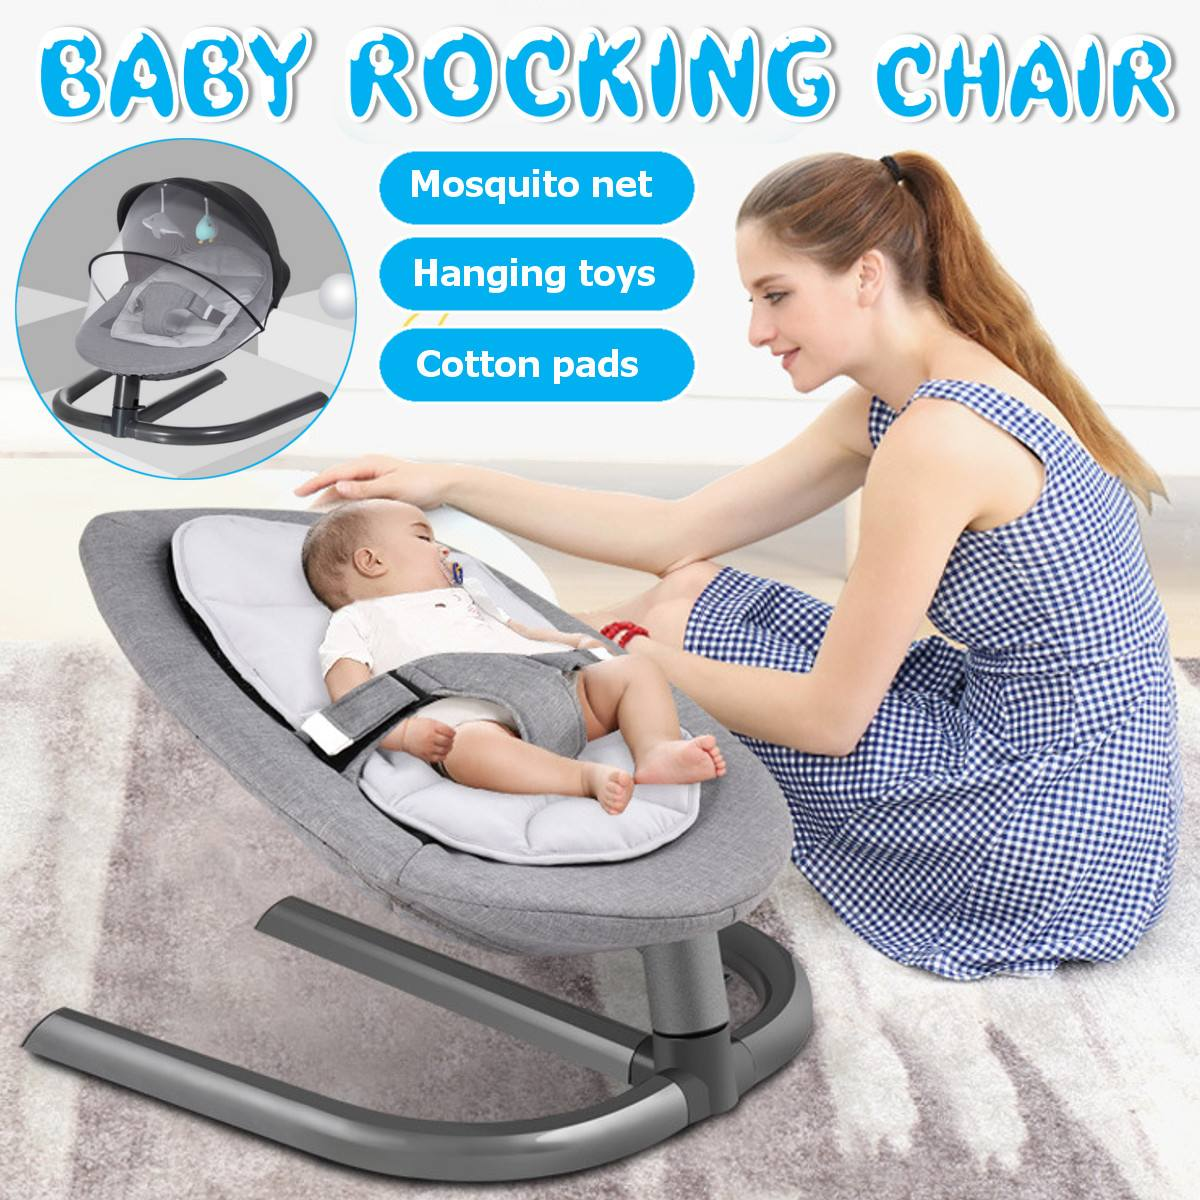 Newborn Electric Swing Multifunctional Baby Bouncer Cradle Rocking Chair With Mosquito Net Cradle Crib Sleeping Safety Newborn Electric Swing Multifunctional  Baby Bouncer Cradle Rocking Chair With Mosquito Net Cradle Crib Sleeping Safety Basket